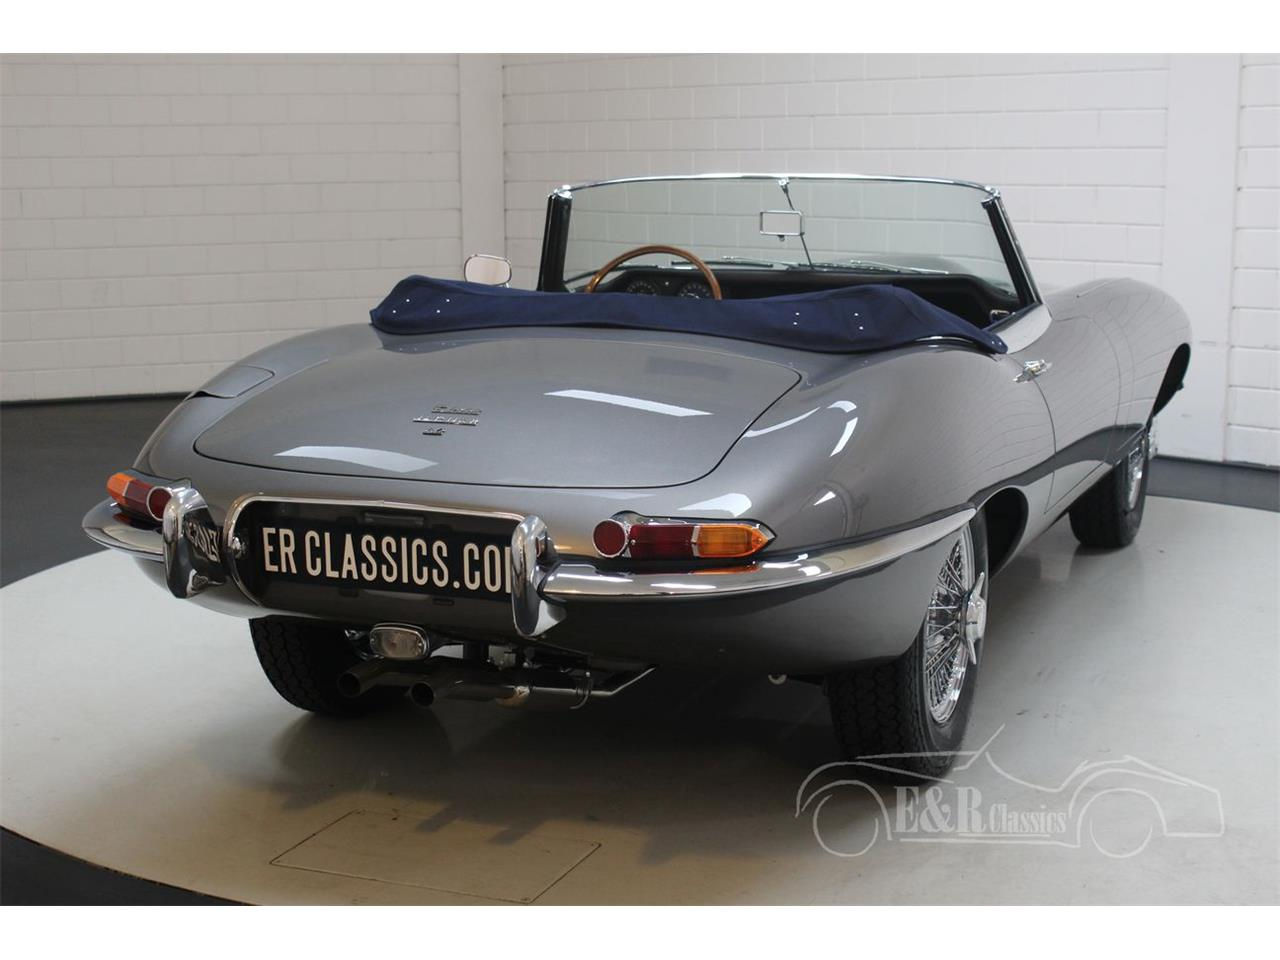 Large Picture of 1967 E-Type located in Noord-Brabant - $222,650.00 Offered by E & R Classics - QQ1I